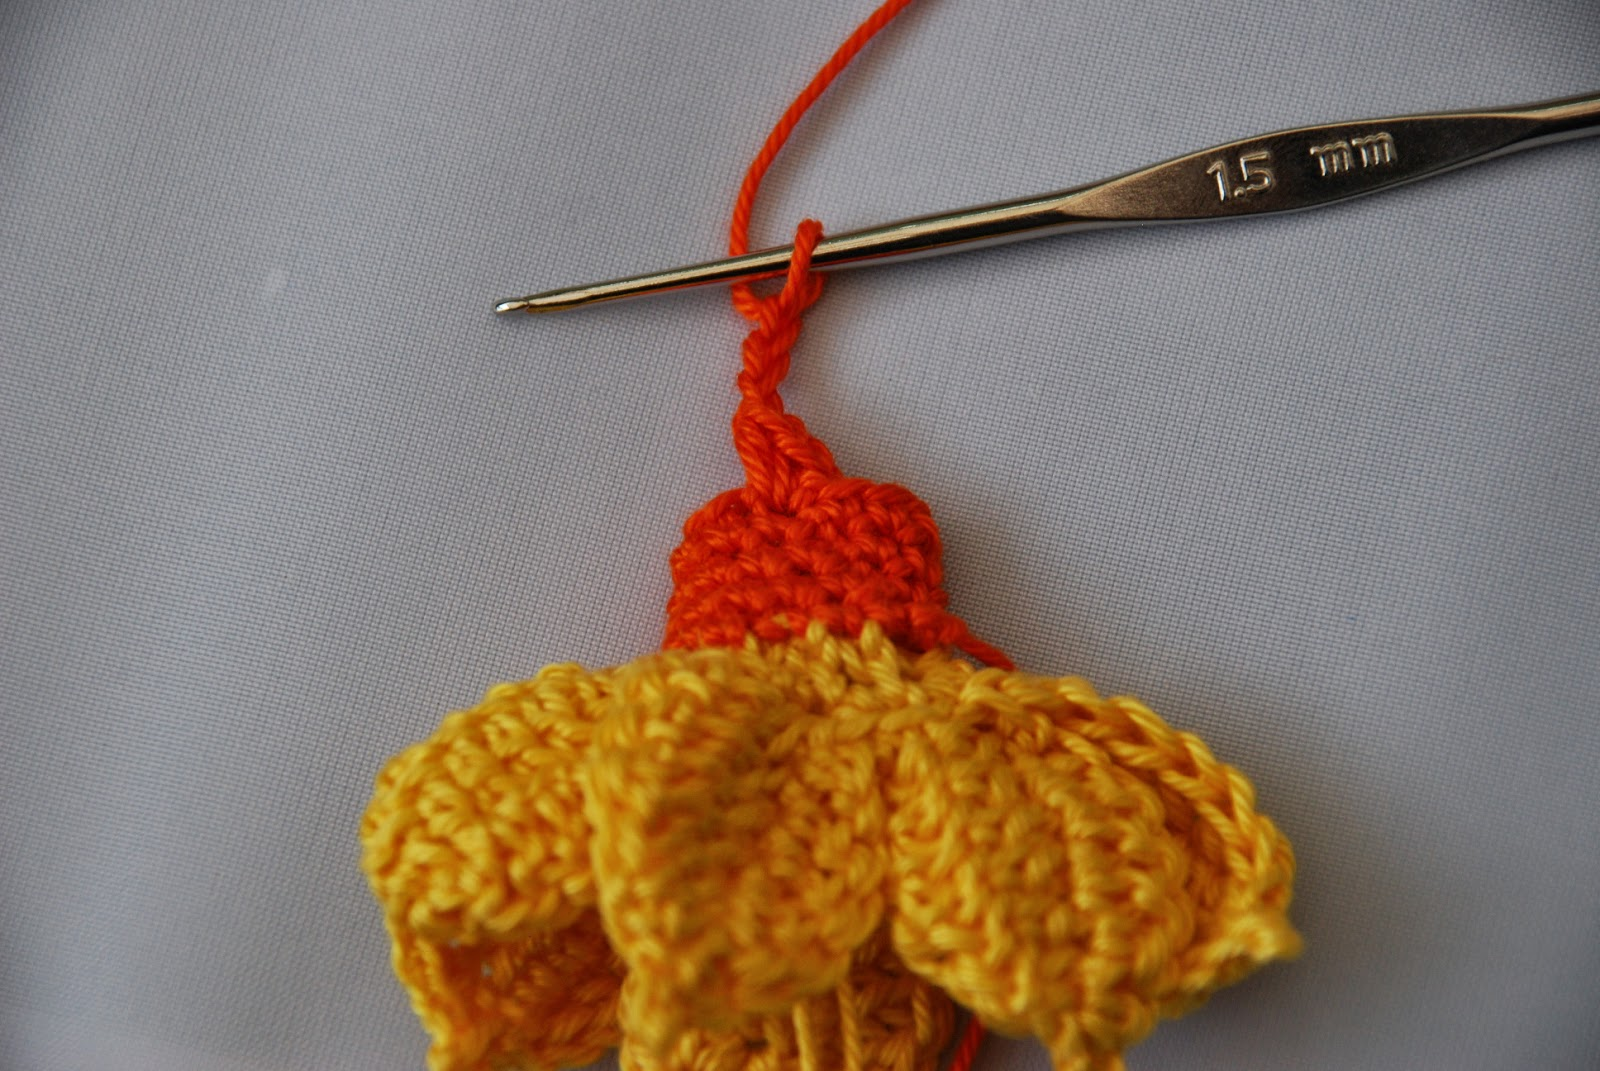 Crochet Daffodil pattern and tutorial: image of stitches for frilly daffodil edge